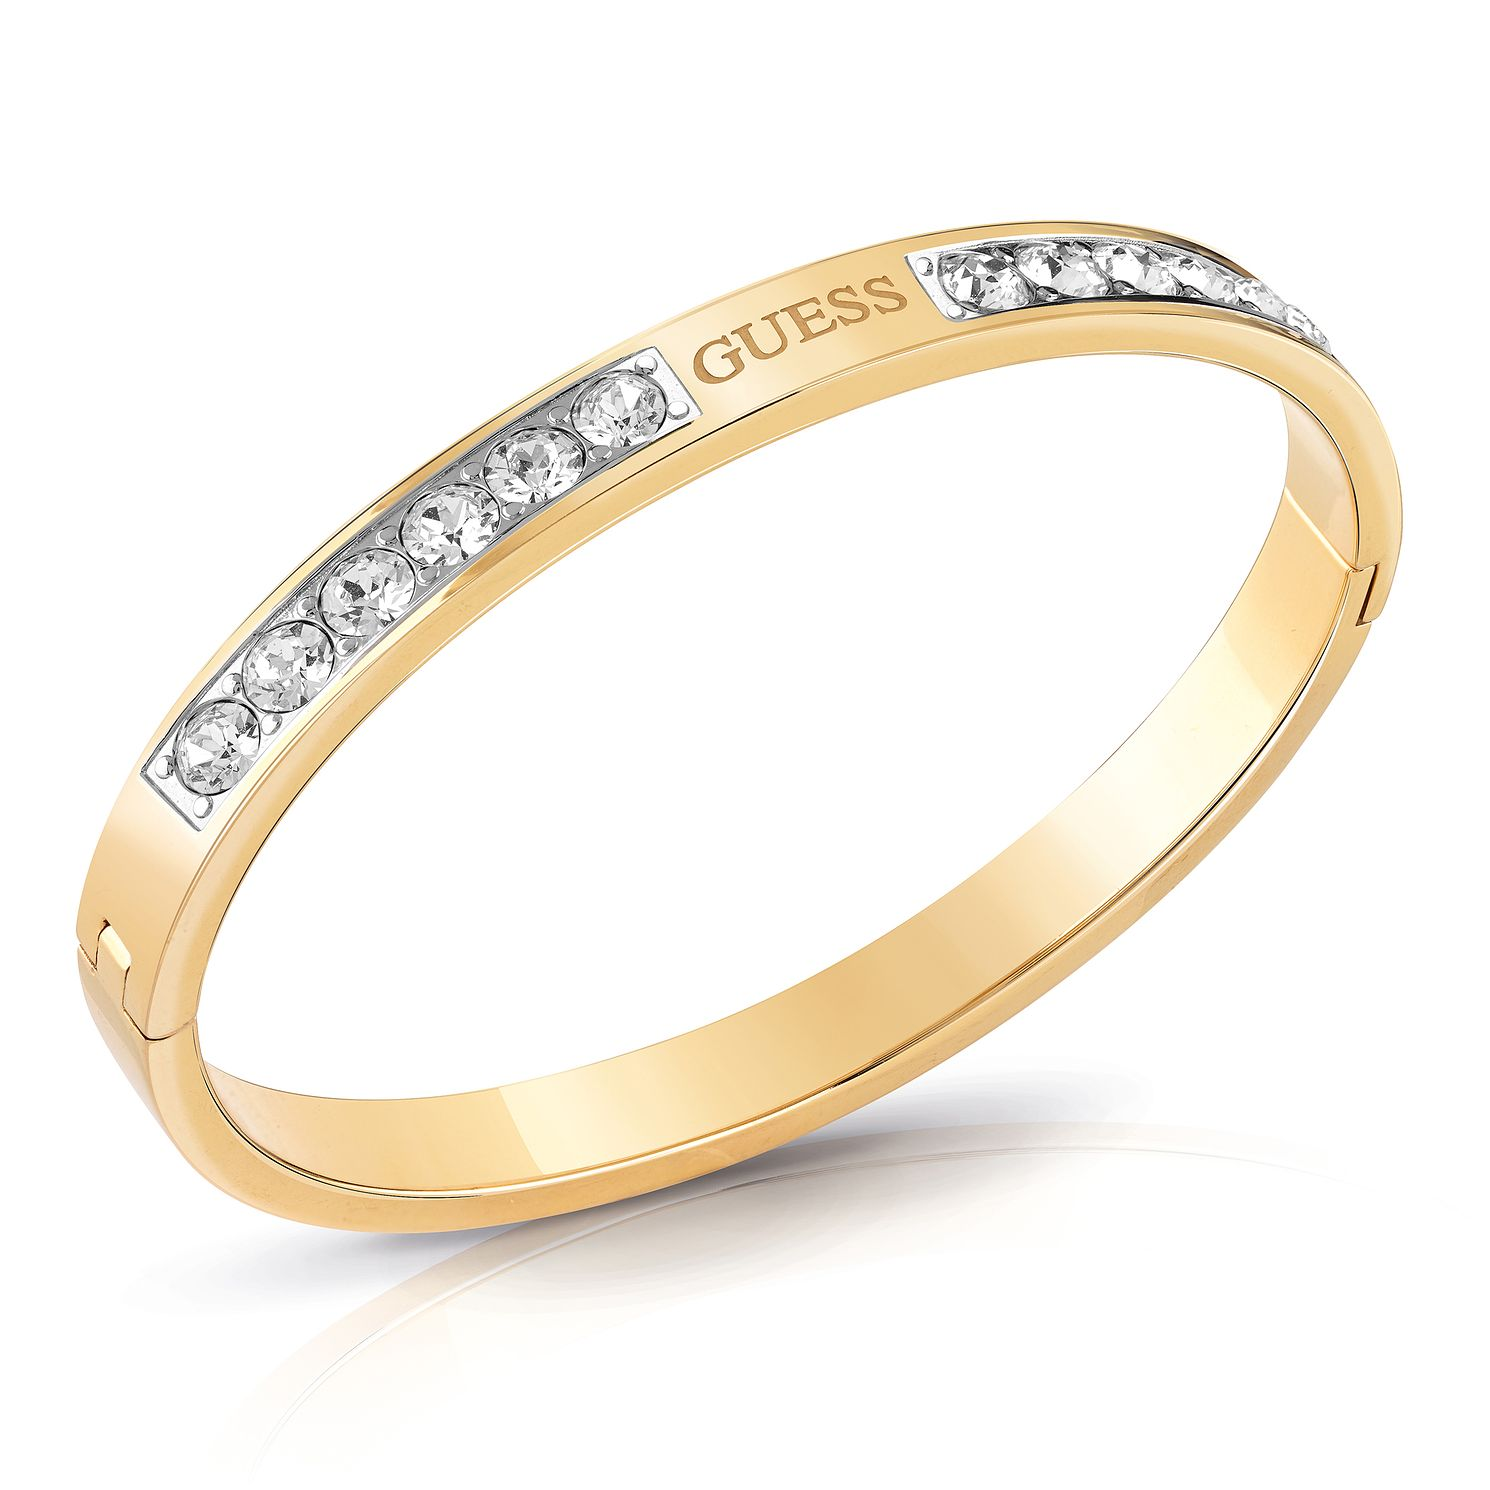 Guess Yellow Gold Tone Swarovski Crystal Bangle - Product number 4104765